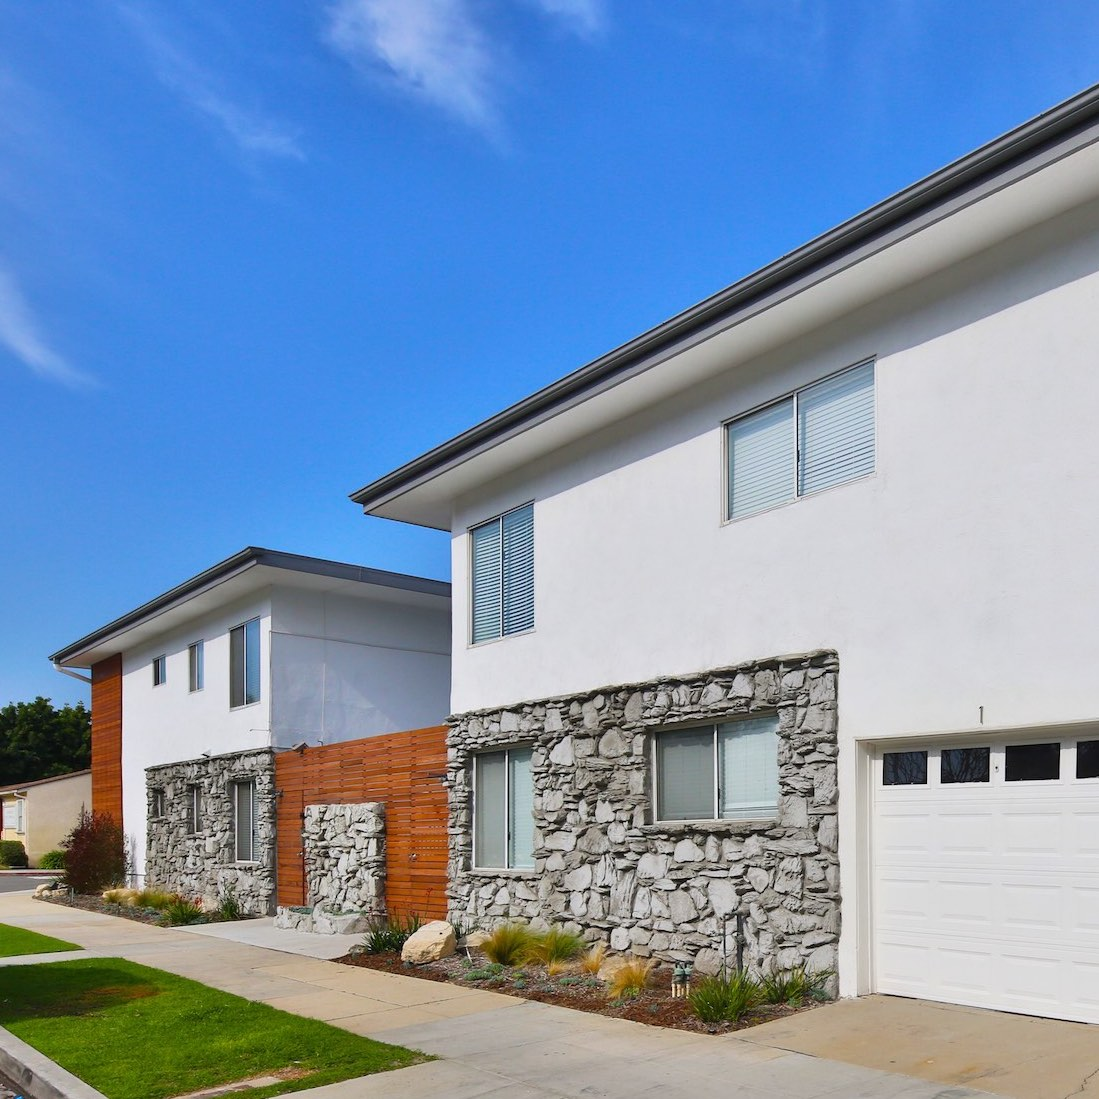 1801 WARDLOW - Long Beach, CA